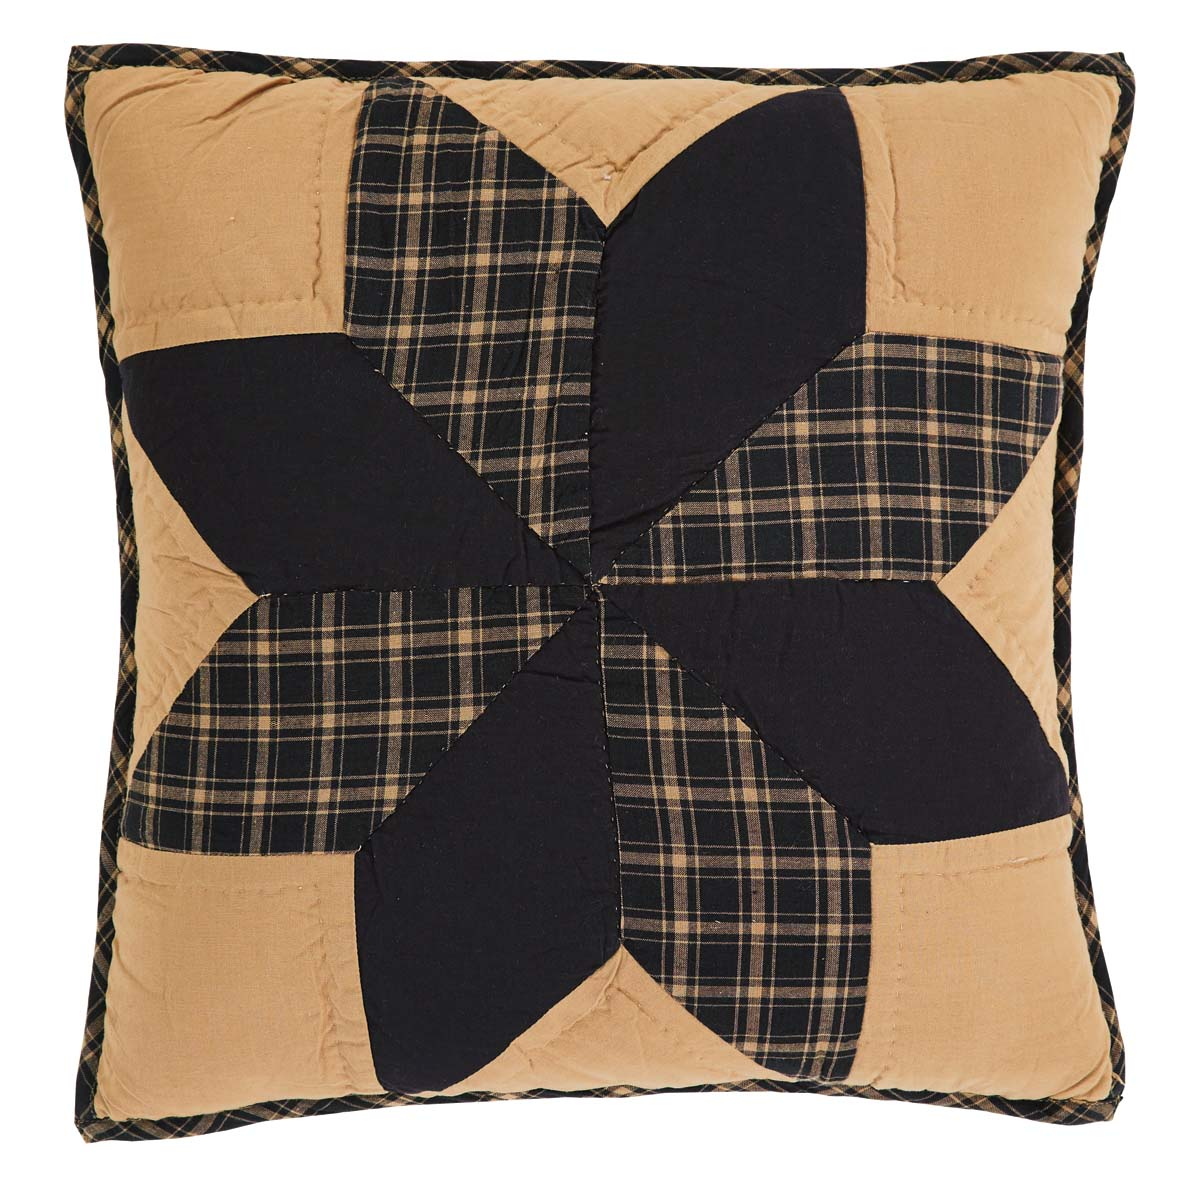 Dakota Star Quilted Pillow 16x16